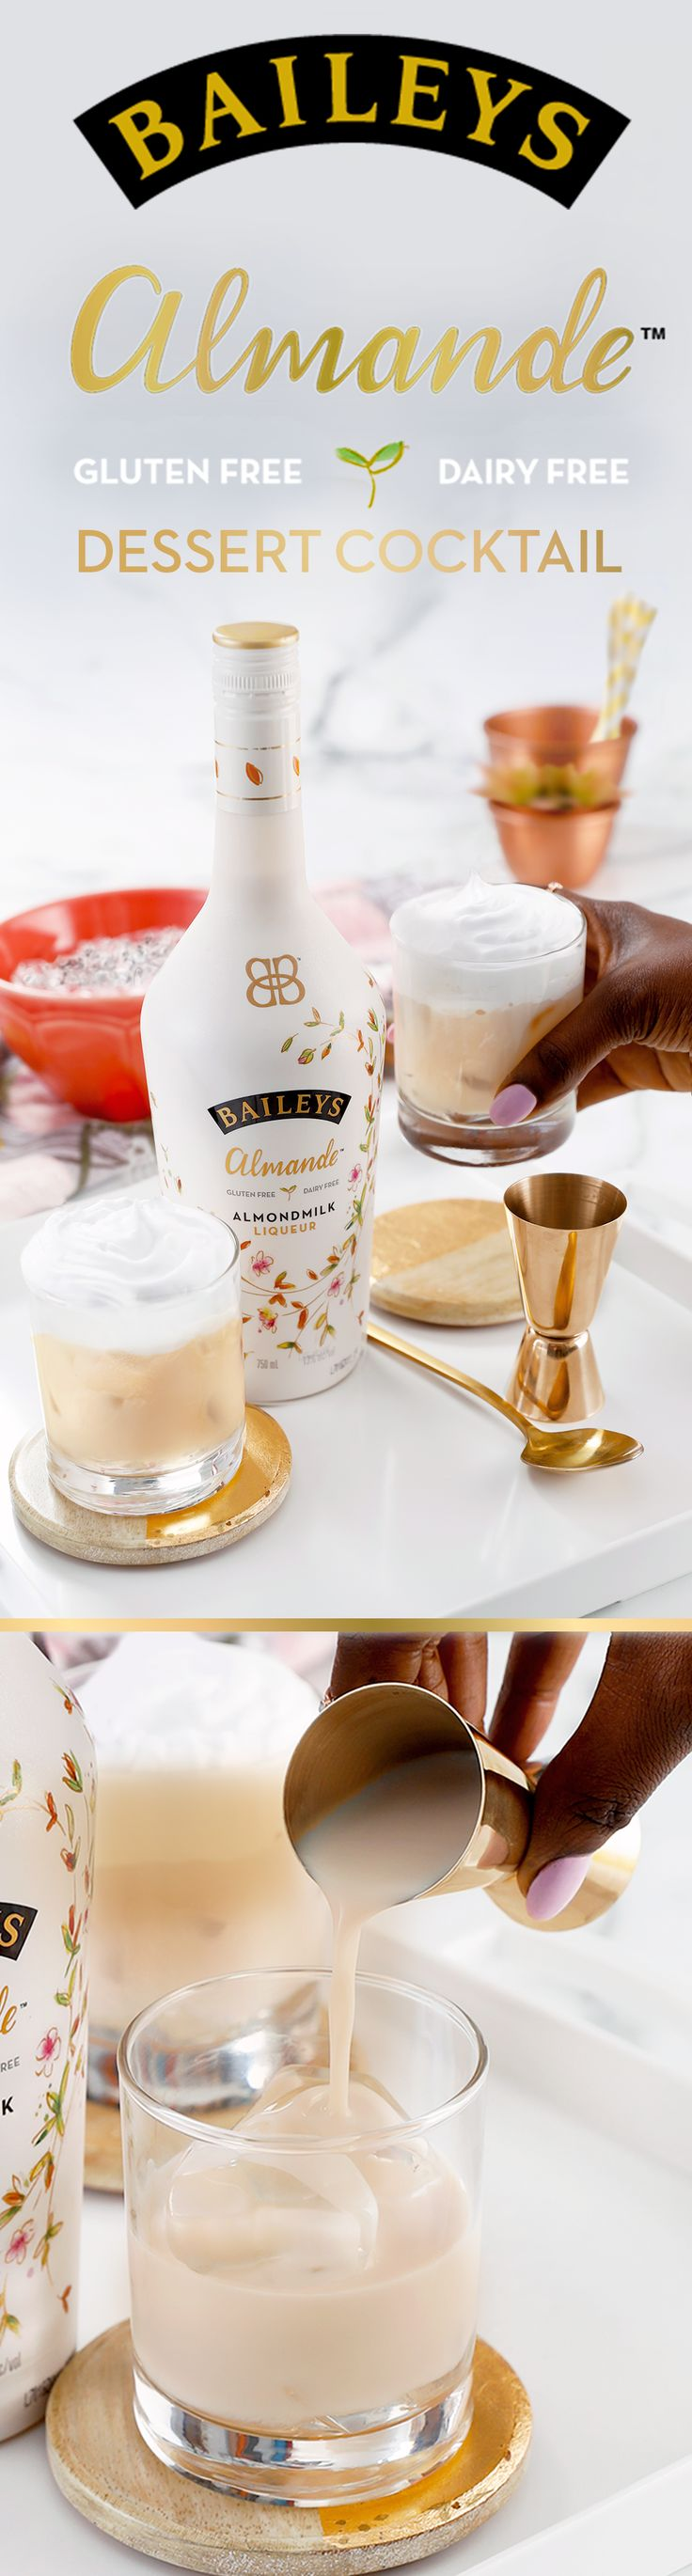 Serve your dessert on the rocks—with Baileys Almande. Whether it's date night or girls night, this simple almondmilk liqueur is the perfect after-dinner treat - and it's dairy free, gluten free, and vegan. For our light-tasting Vanilla Bean Cocktail, simply pour 2 oz Baileys Almande, .5 oz Vanilla Bean Simple Syrup over crushed ice and top with whipped cream.